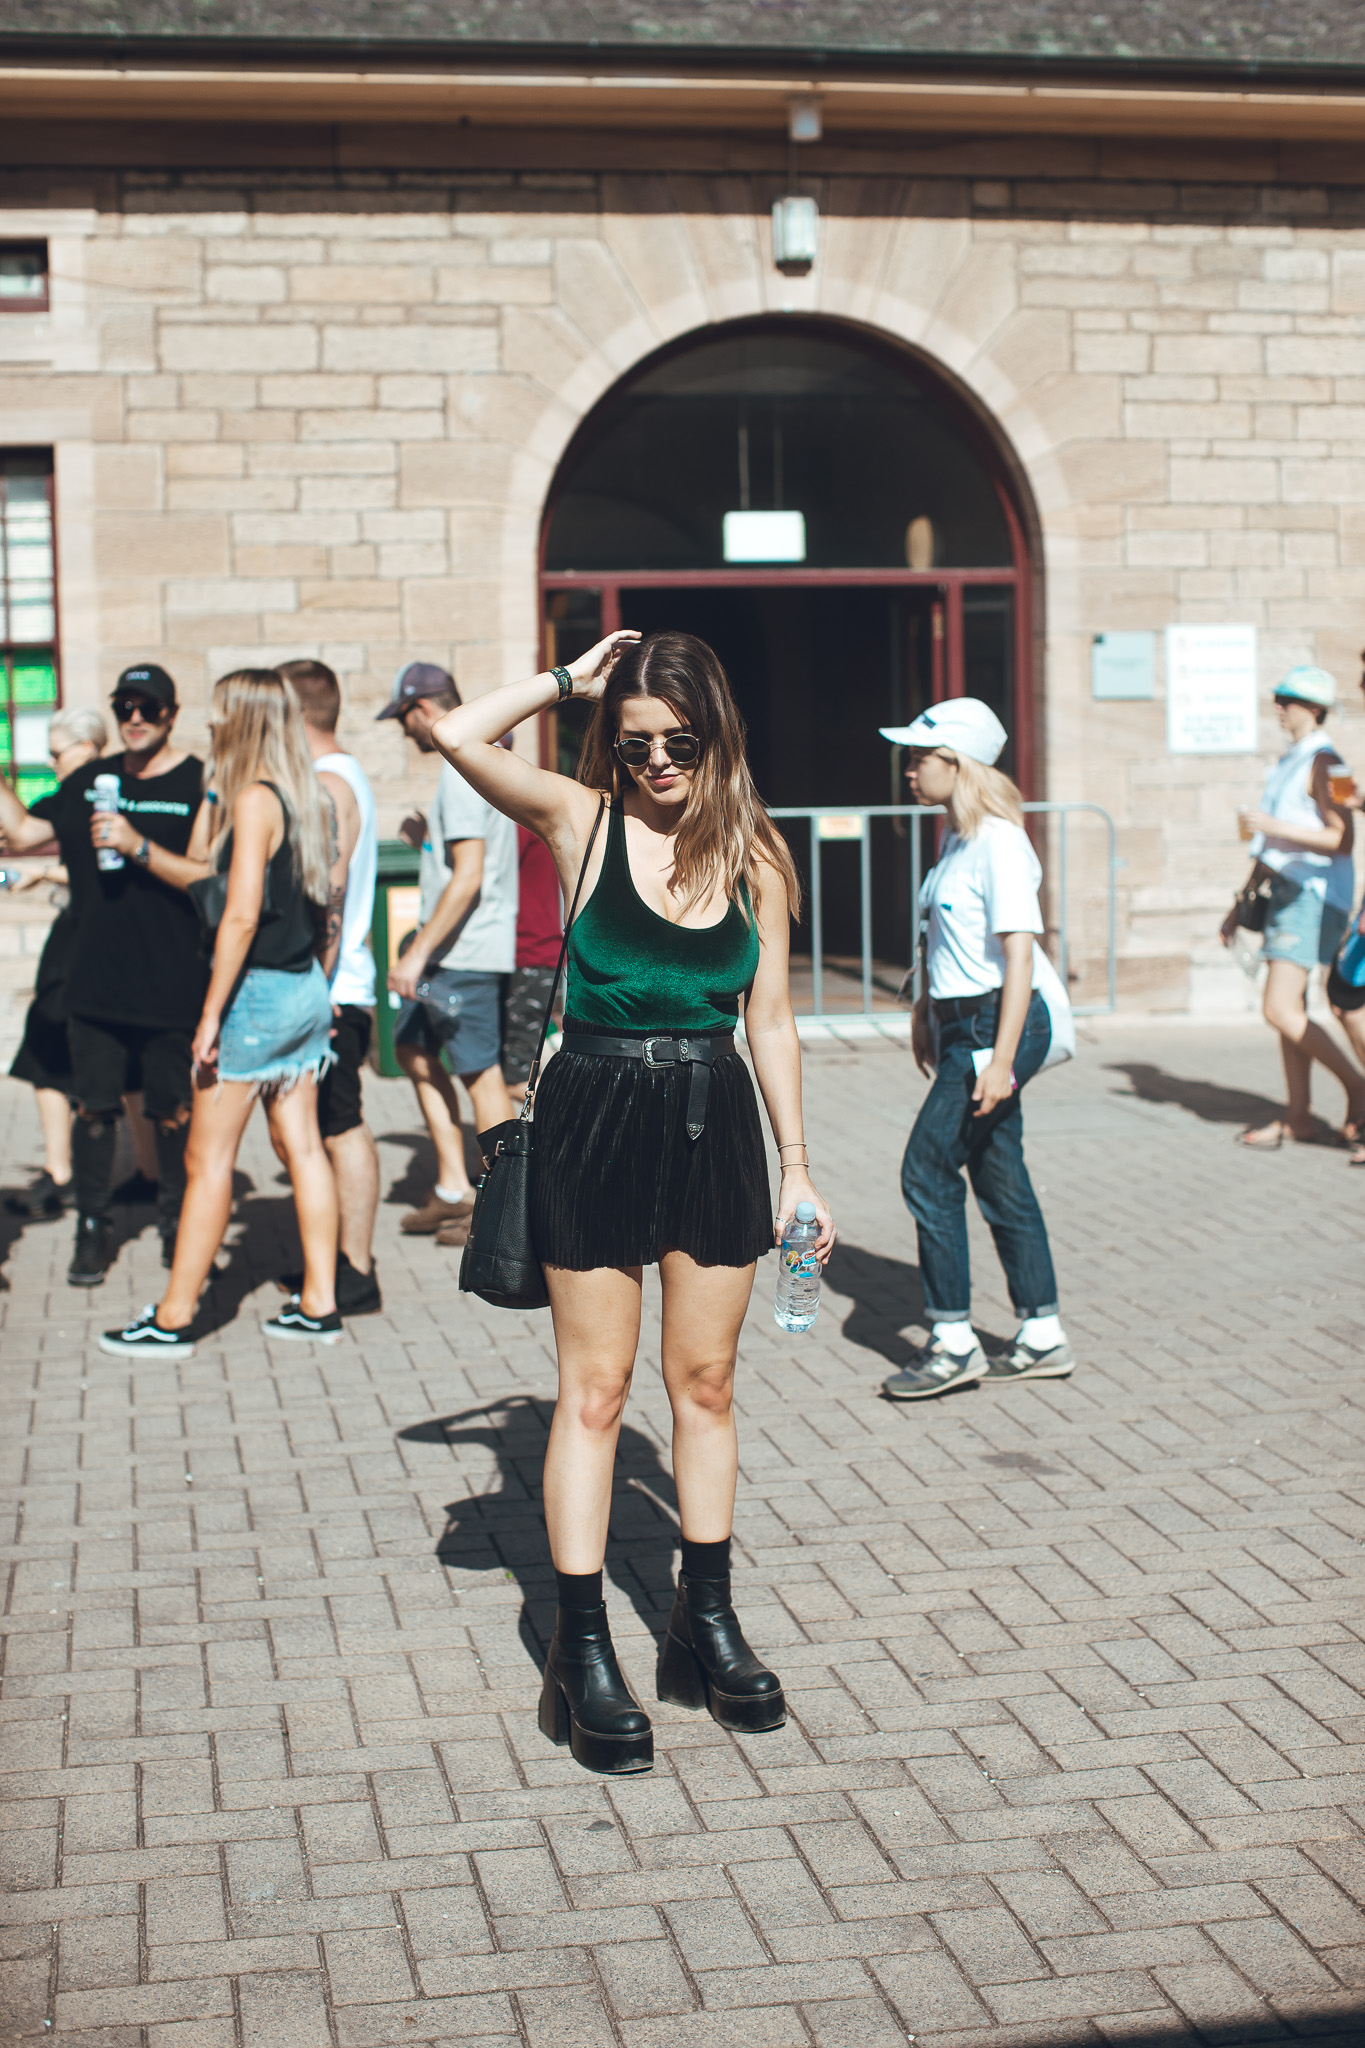 laneway_photo-by-oliver-minnett-00133